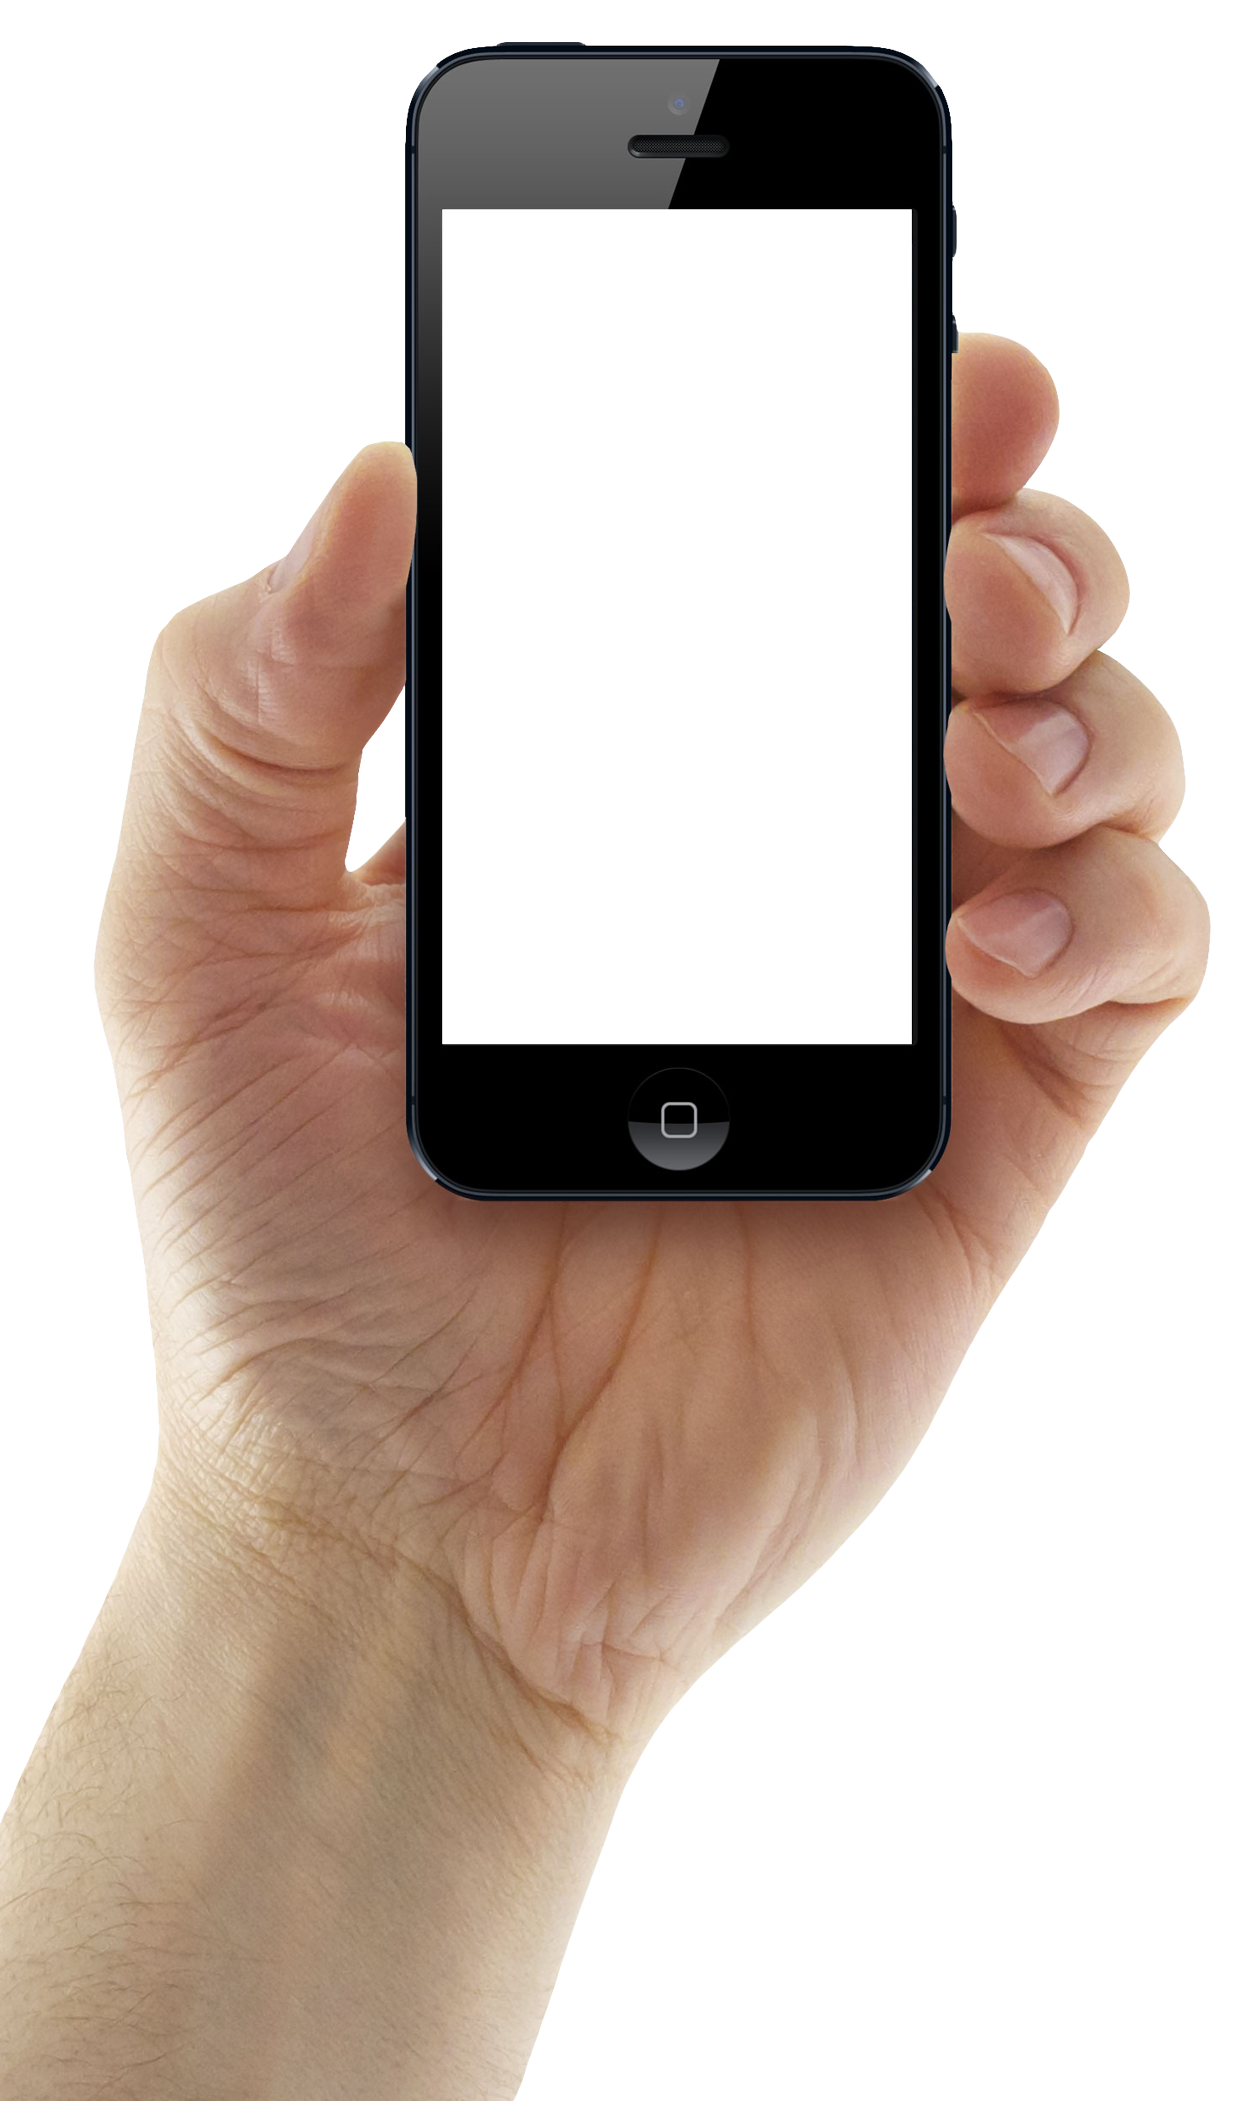 Hand with phone png. Holding iphone mobile image